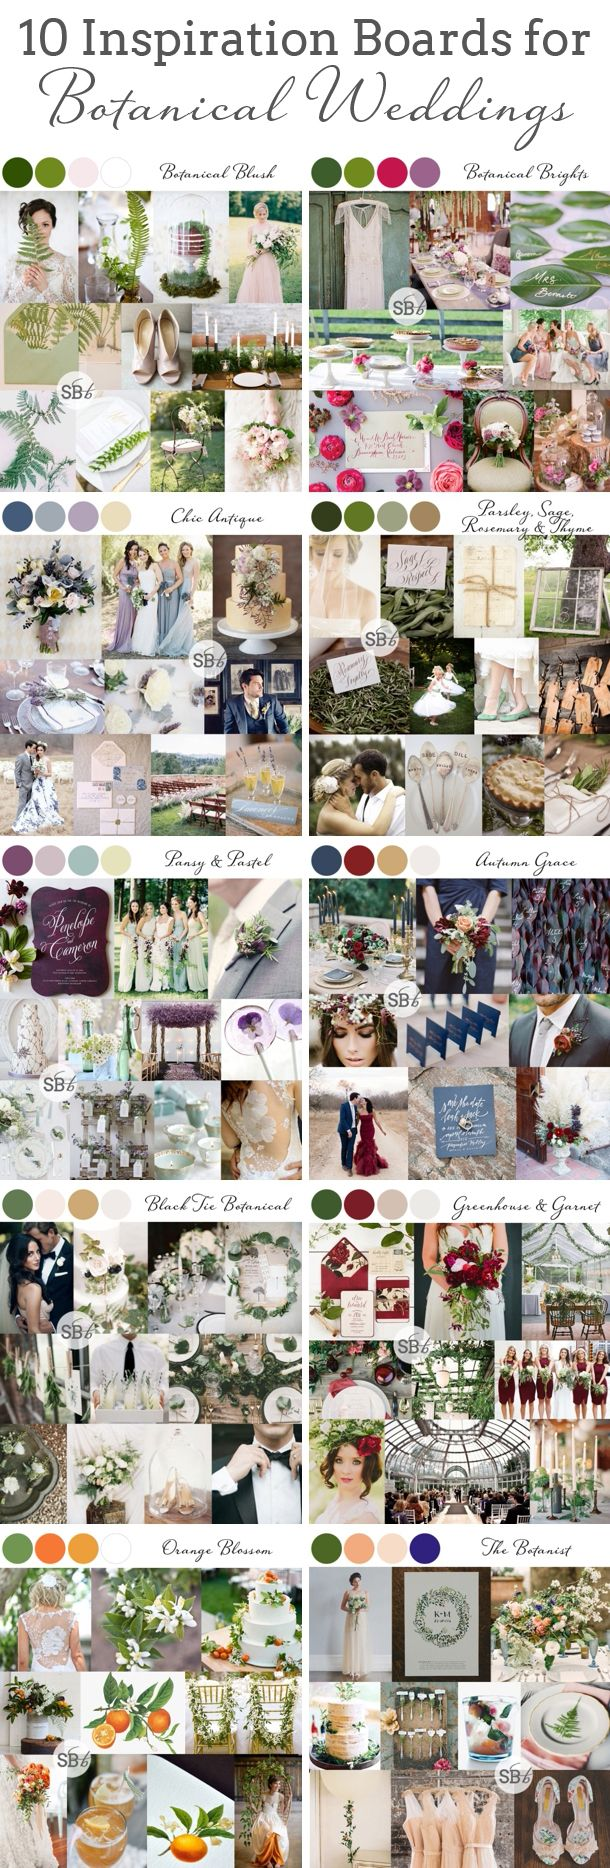 10 #Botanical #Wedding #InspirationBoards | SouthBound Bride www.southboundbride.com/10-botanical-wedding-inspiration-boards